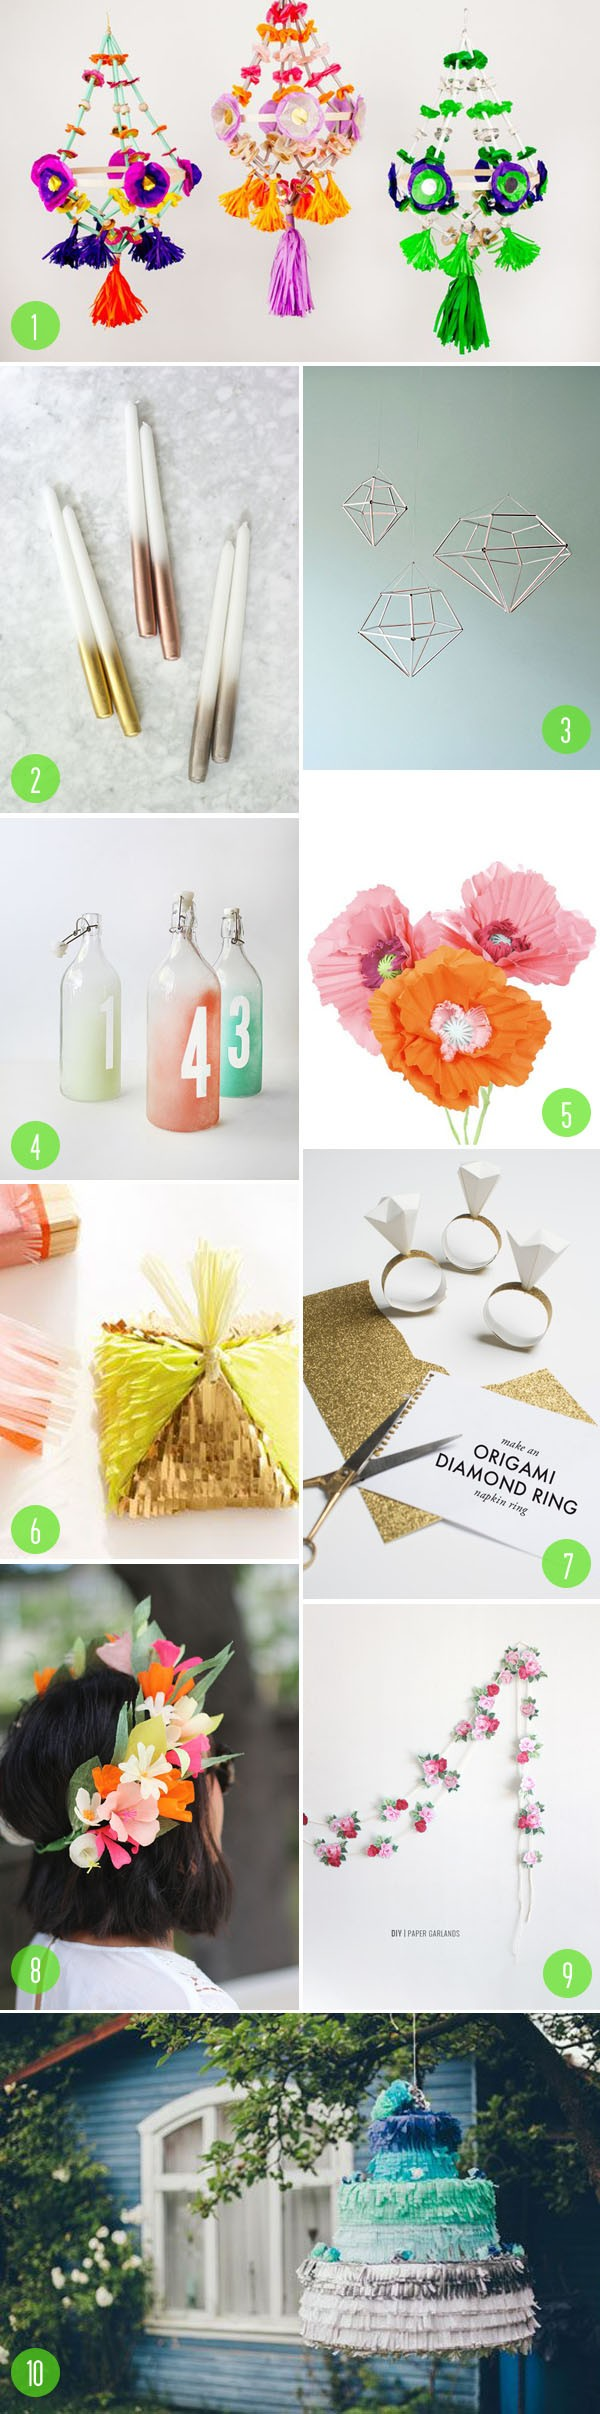 Top 10: wedding DIY projects